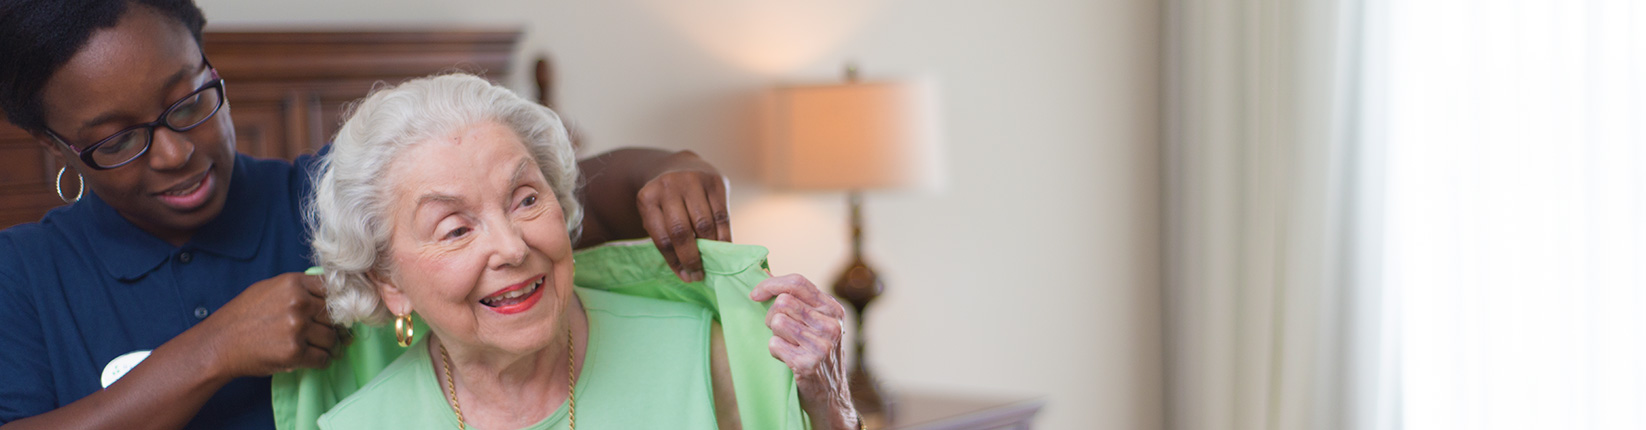 Caregiver Helps with Clothes